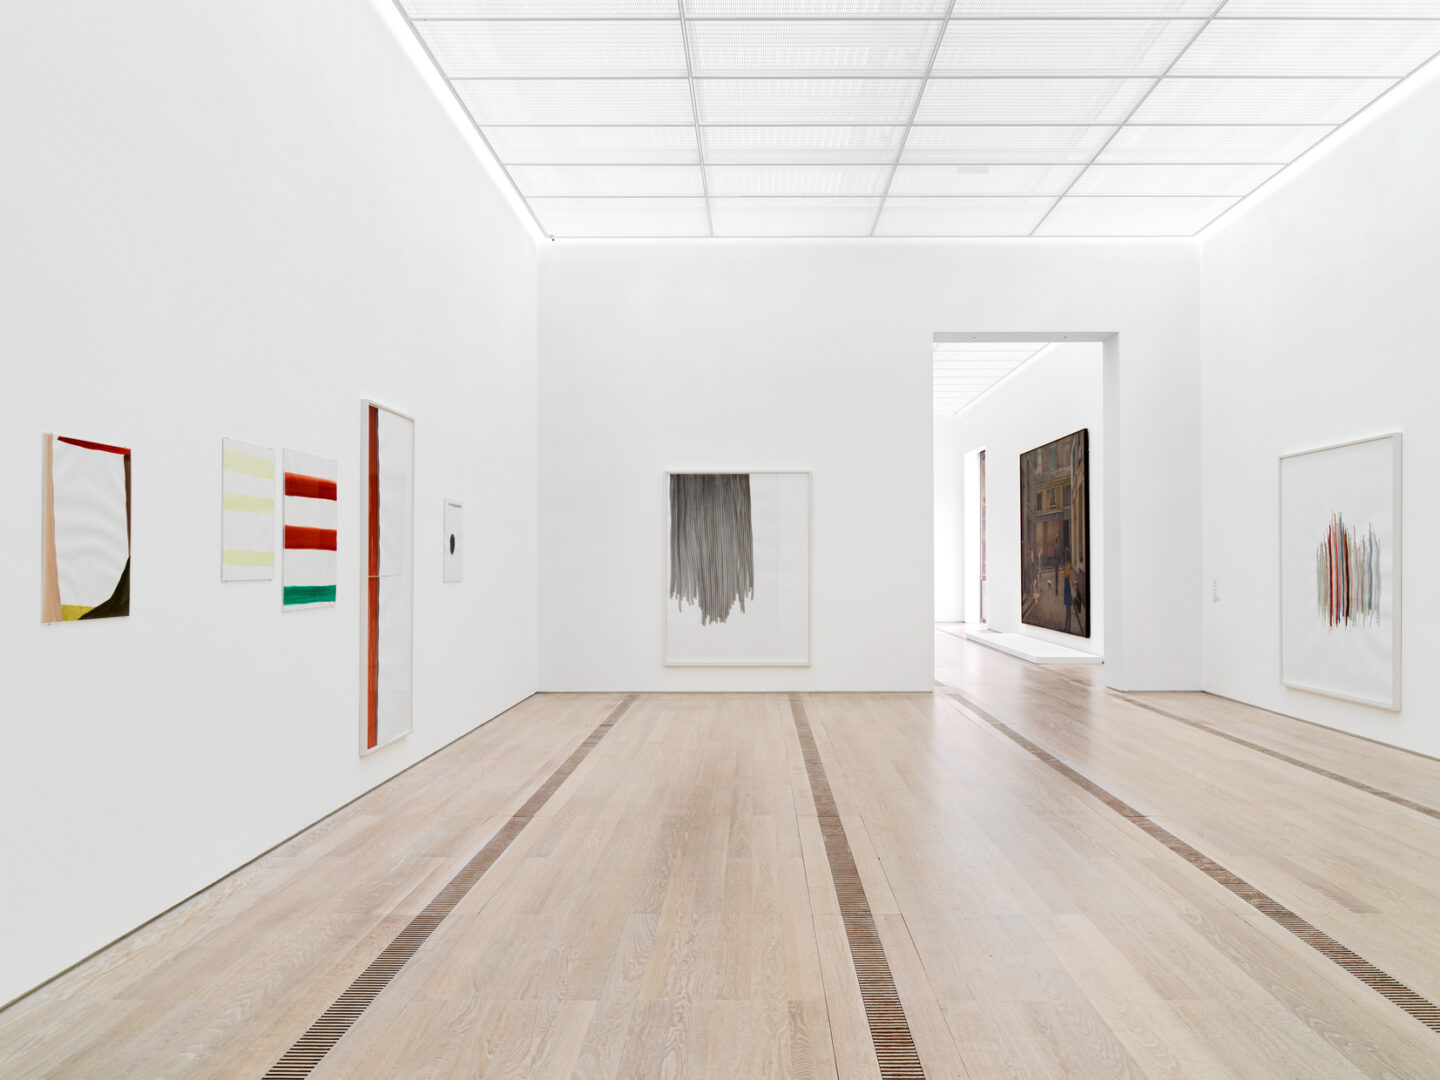 Exhibition View Groupshow «Resonating Spaces; view on Silvia Bächli» at Fondation Beyeler, Riehen, 2019 / Photo: Stefan Altenburger / Courtesy: the artist and Fondation Beyeler